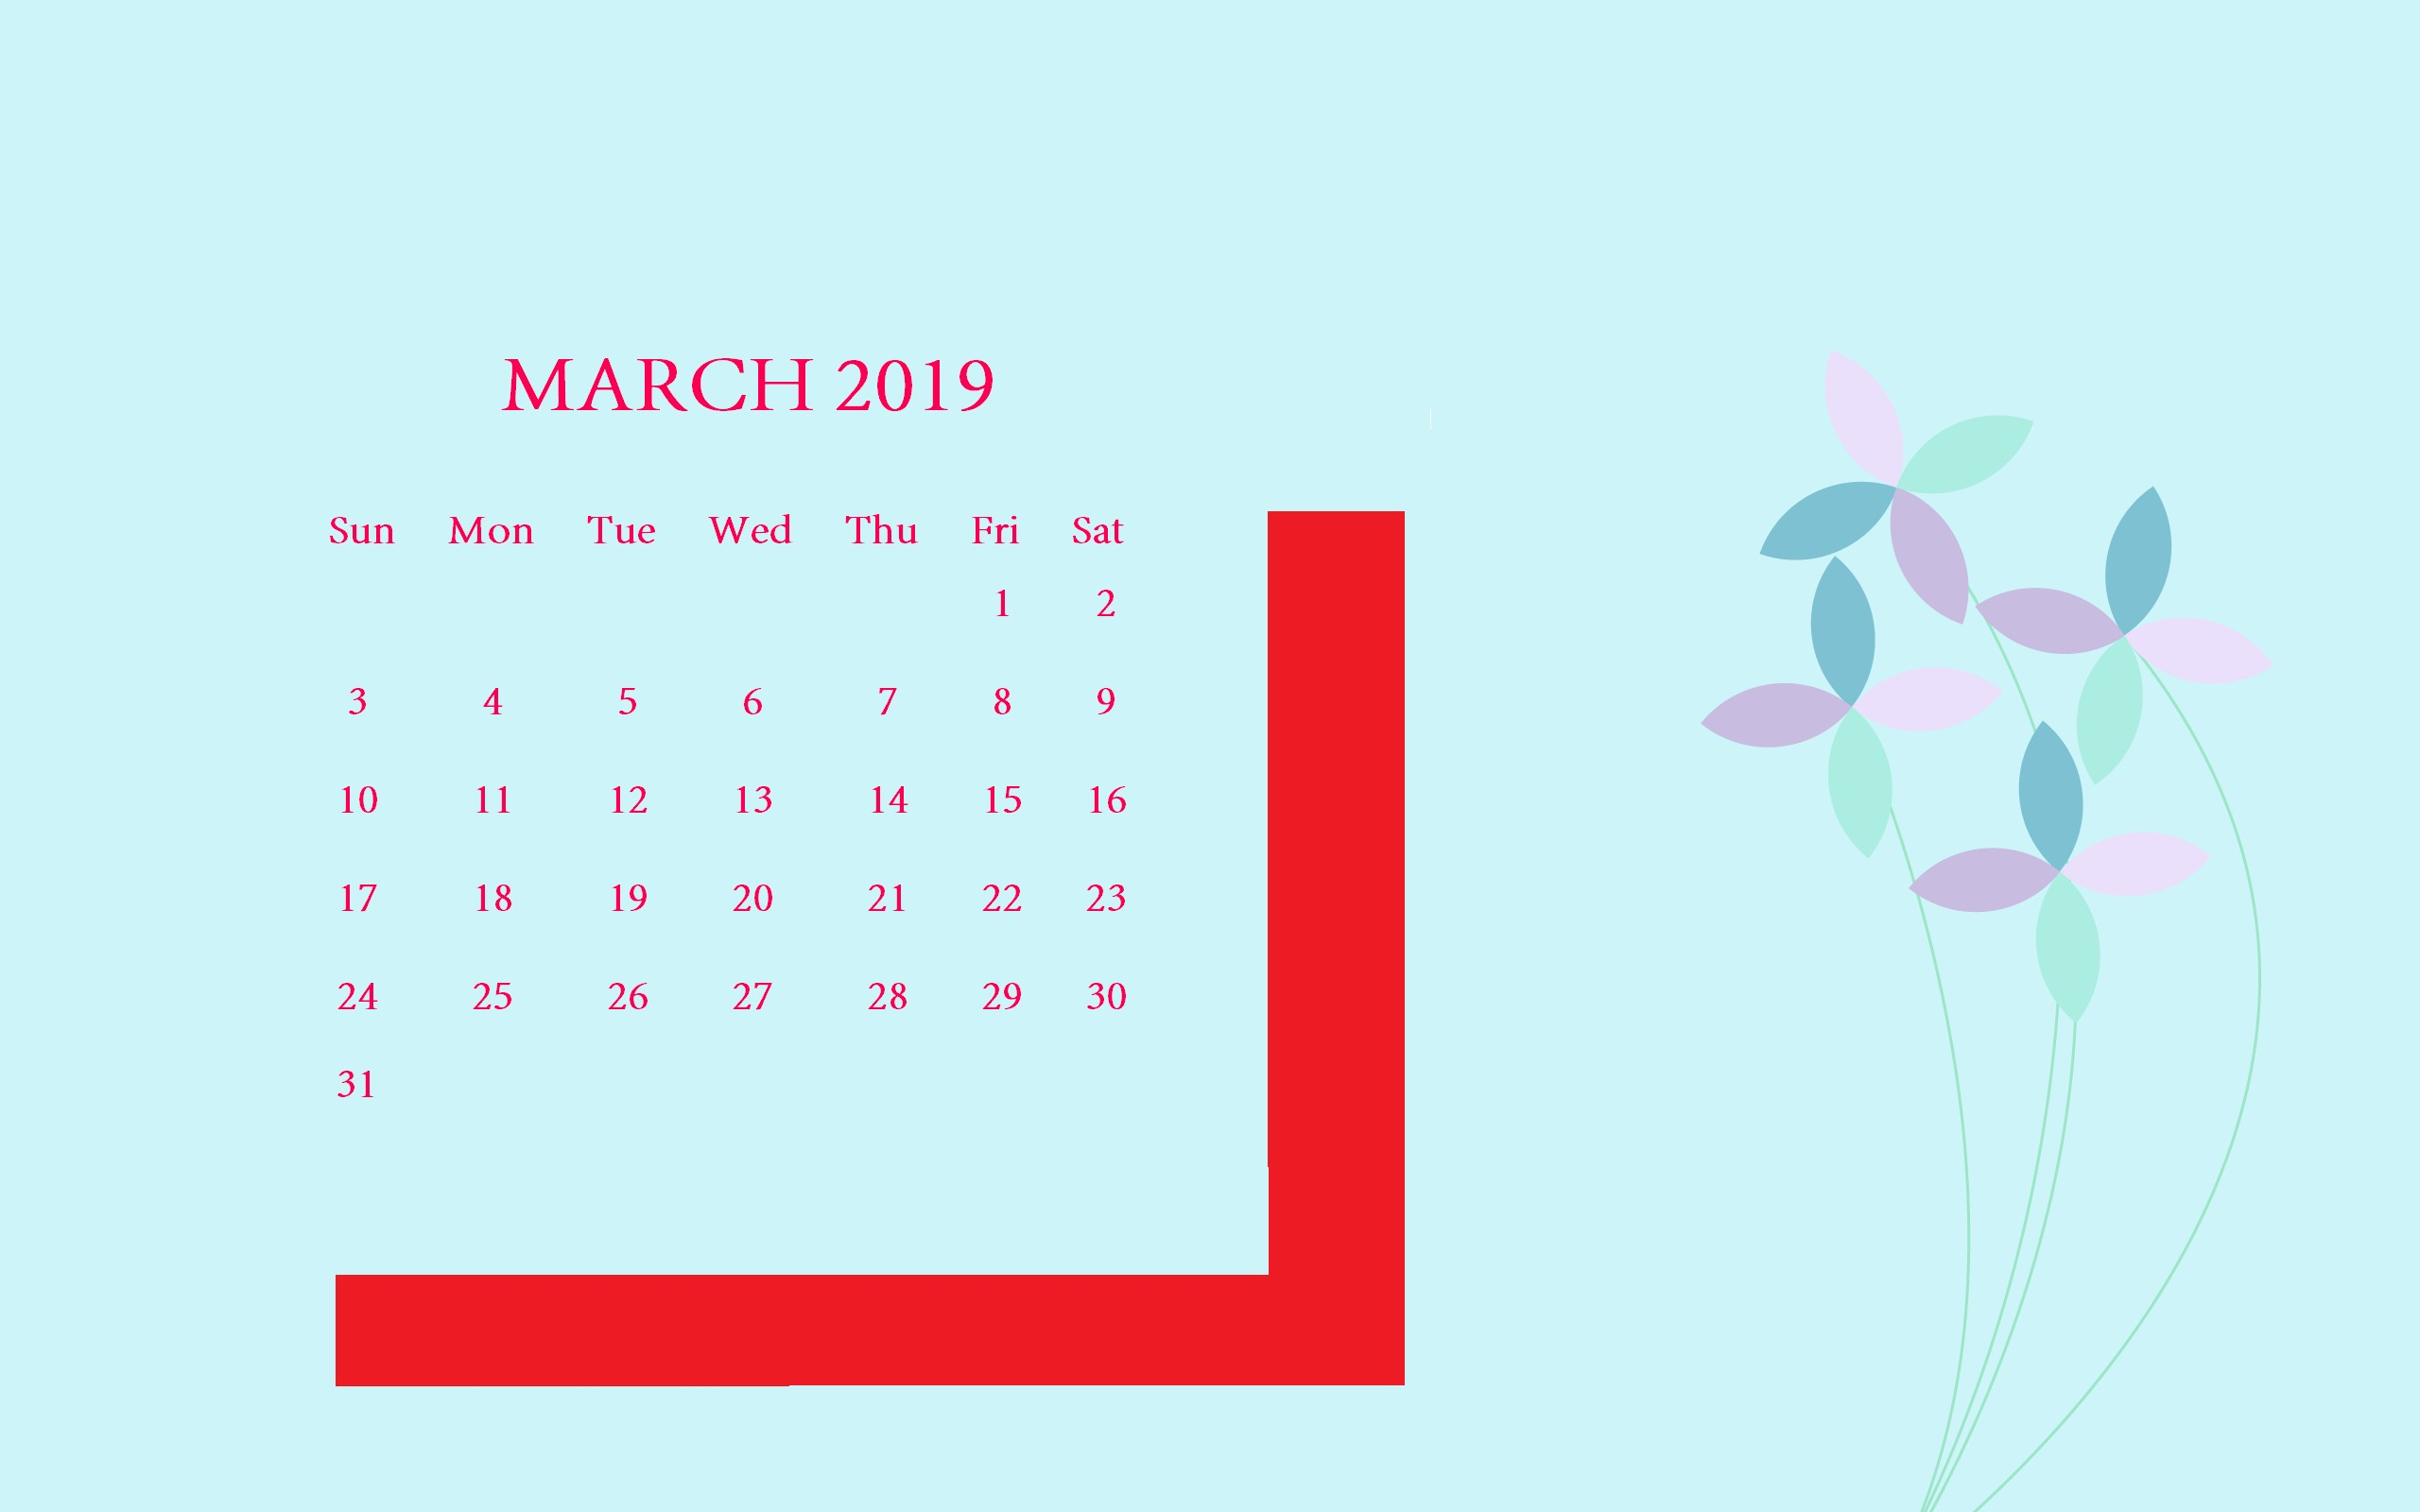 March Calendar 19 Mejores Y Más Novedosos Flowers March 2019 Desktop Calendar March March2019 Of March Calendar 19 Más Recientes Tv News for 2019 Calendar January February March Calendar Online 2019